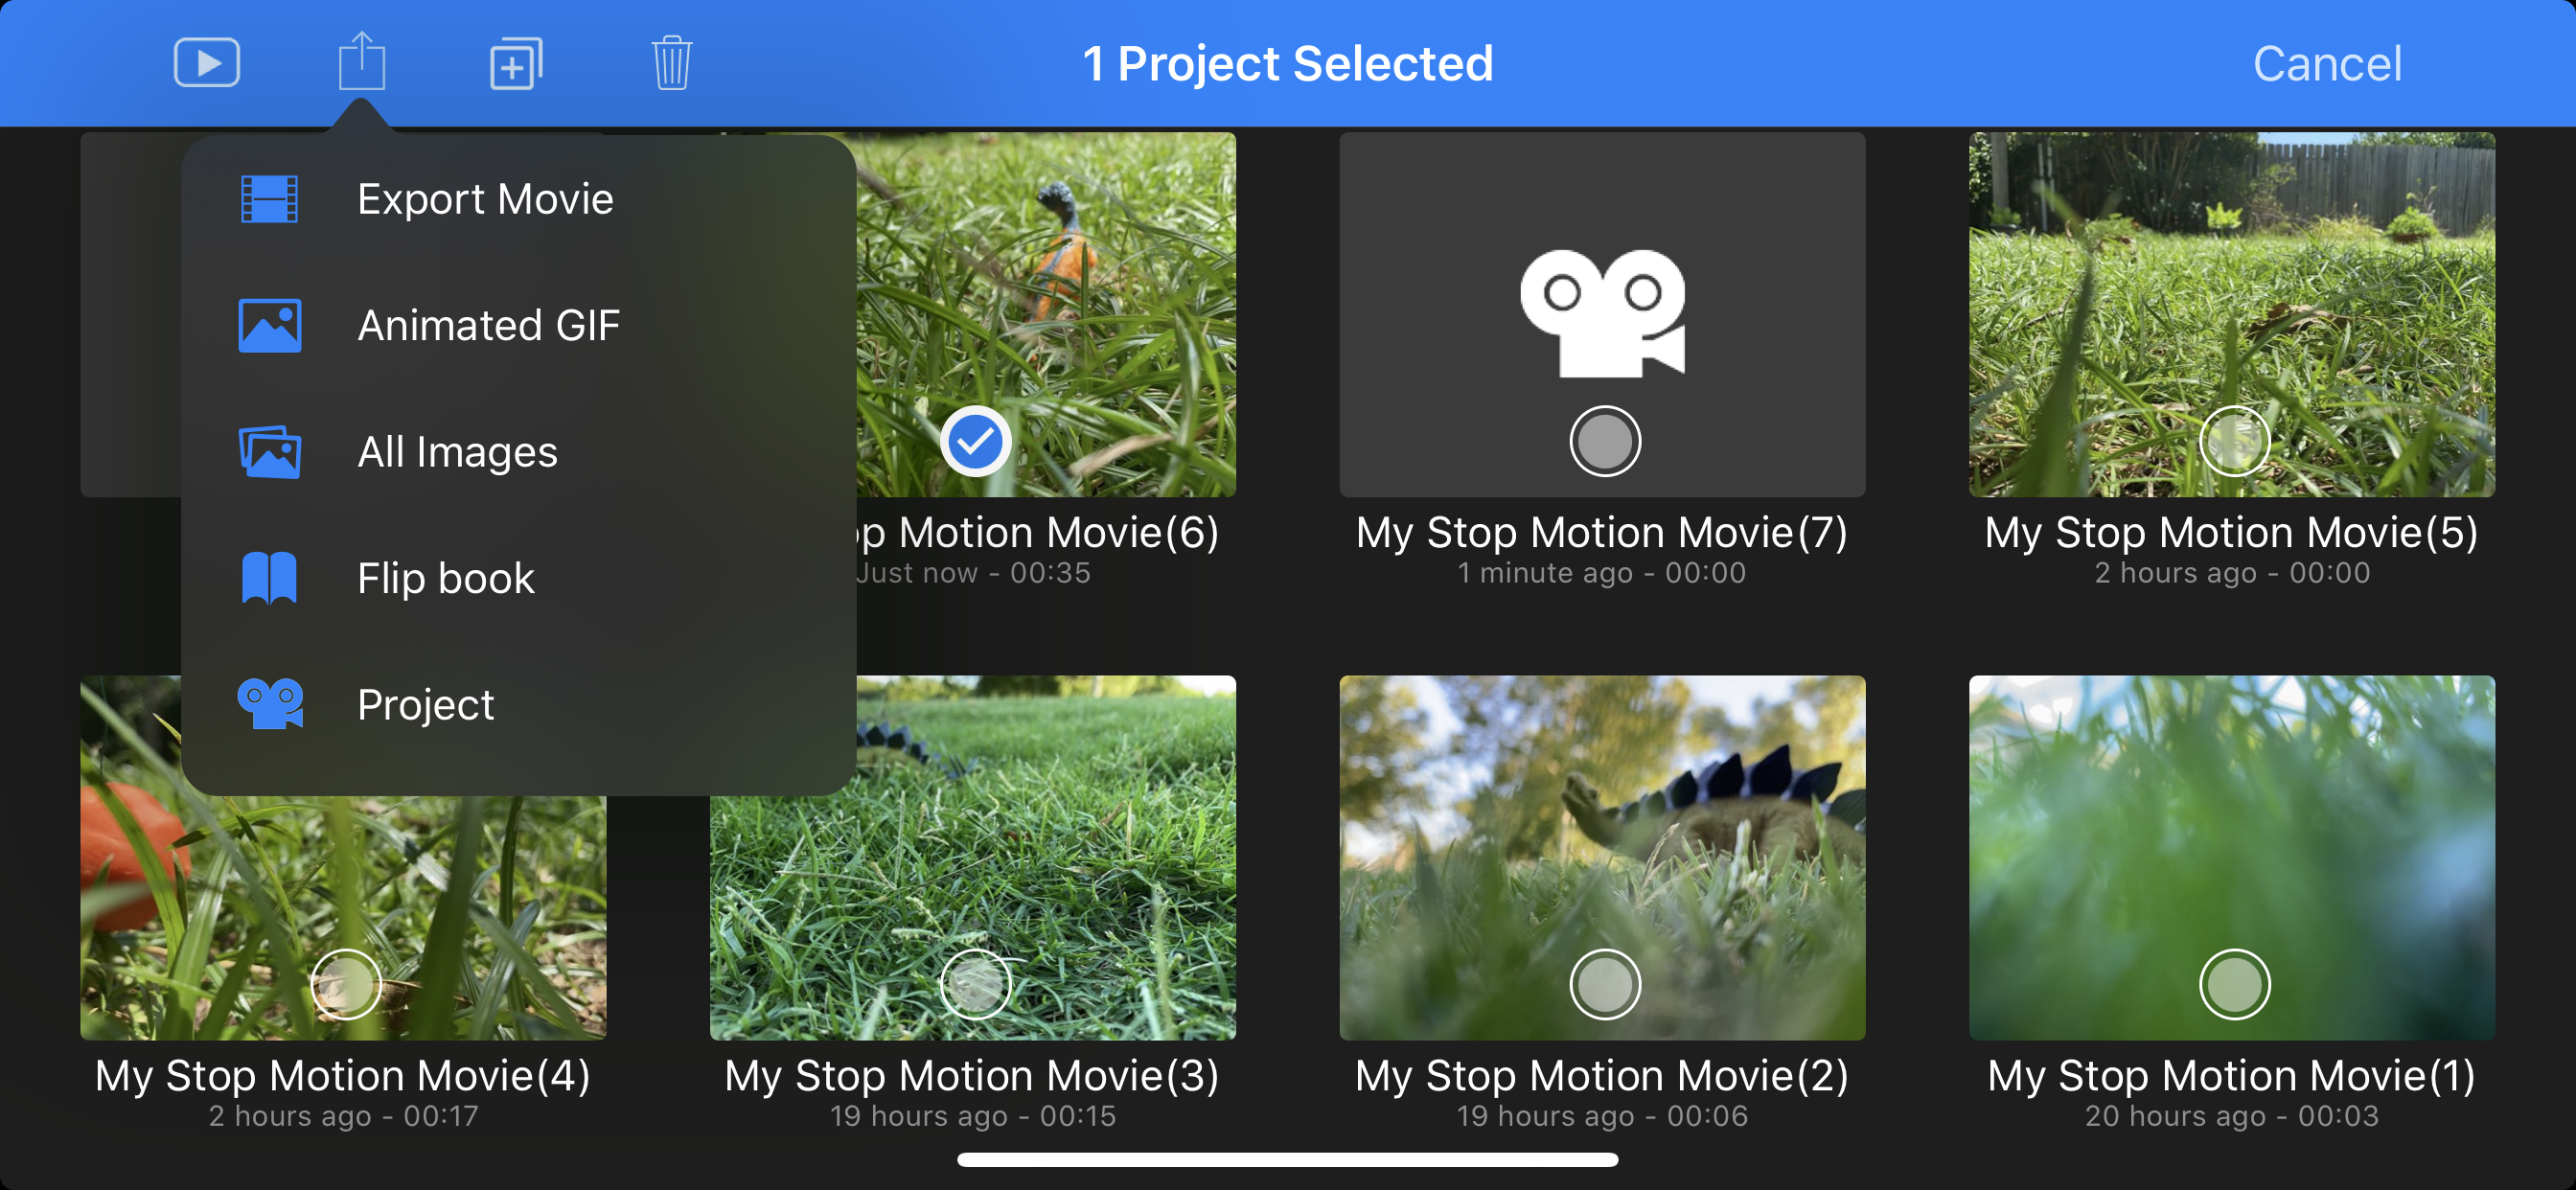 Screenshot from a stop-motion animation app shows a series of thumbnail icons and a drop-down menu with the following options: Export Movie, Animated GIF, All Images, Flip Book, Project